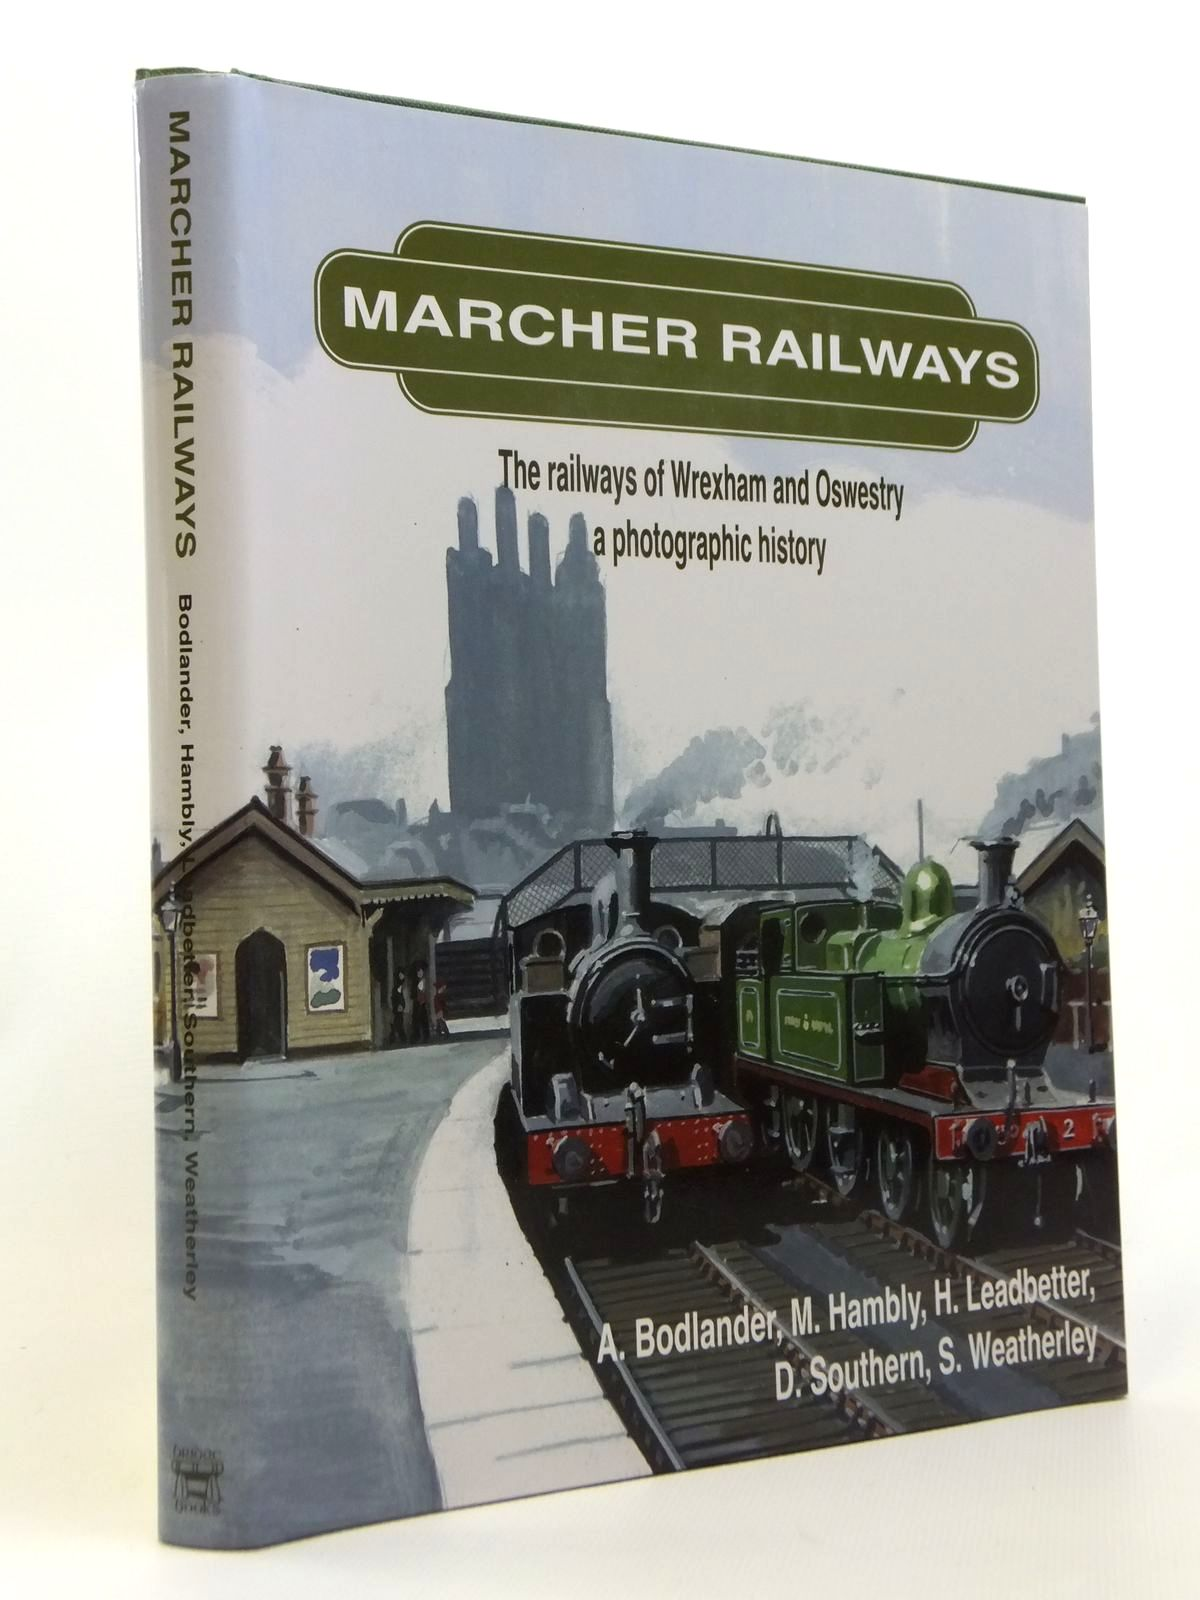 Photo of MARCHER RAILWAYS: THE RAILWAYS OF WREXHAM AND OSWESTRY A PHOTOGRAPHIC HISTORY written by Bodlander, A.<br />Hambly, M.<br />Leadbetter, H.<br />Southern, D.<br />Weatherley, S. published by Bridge Books (STOCK CODE: 1812394)  for sale by Stella & Rose's Books